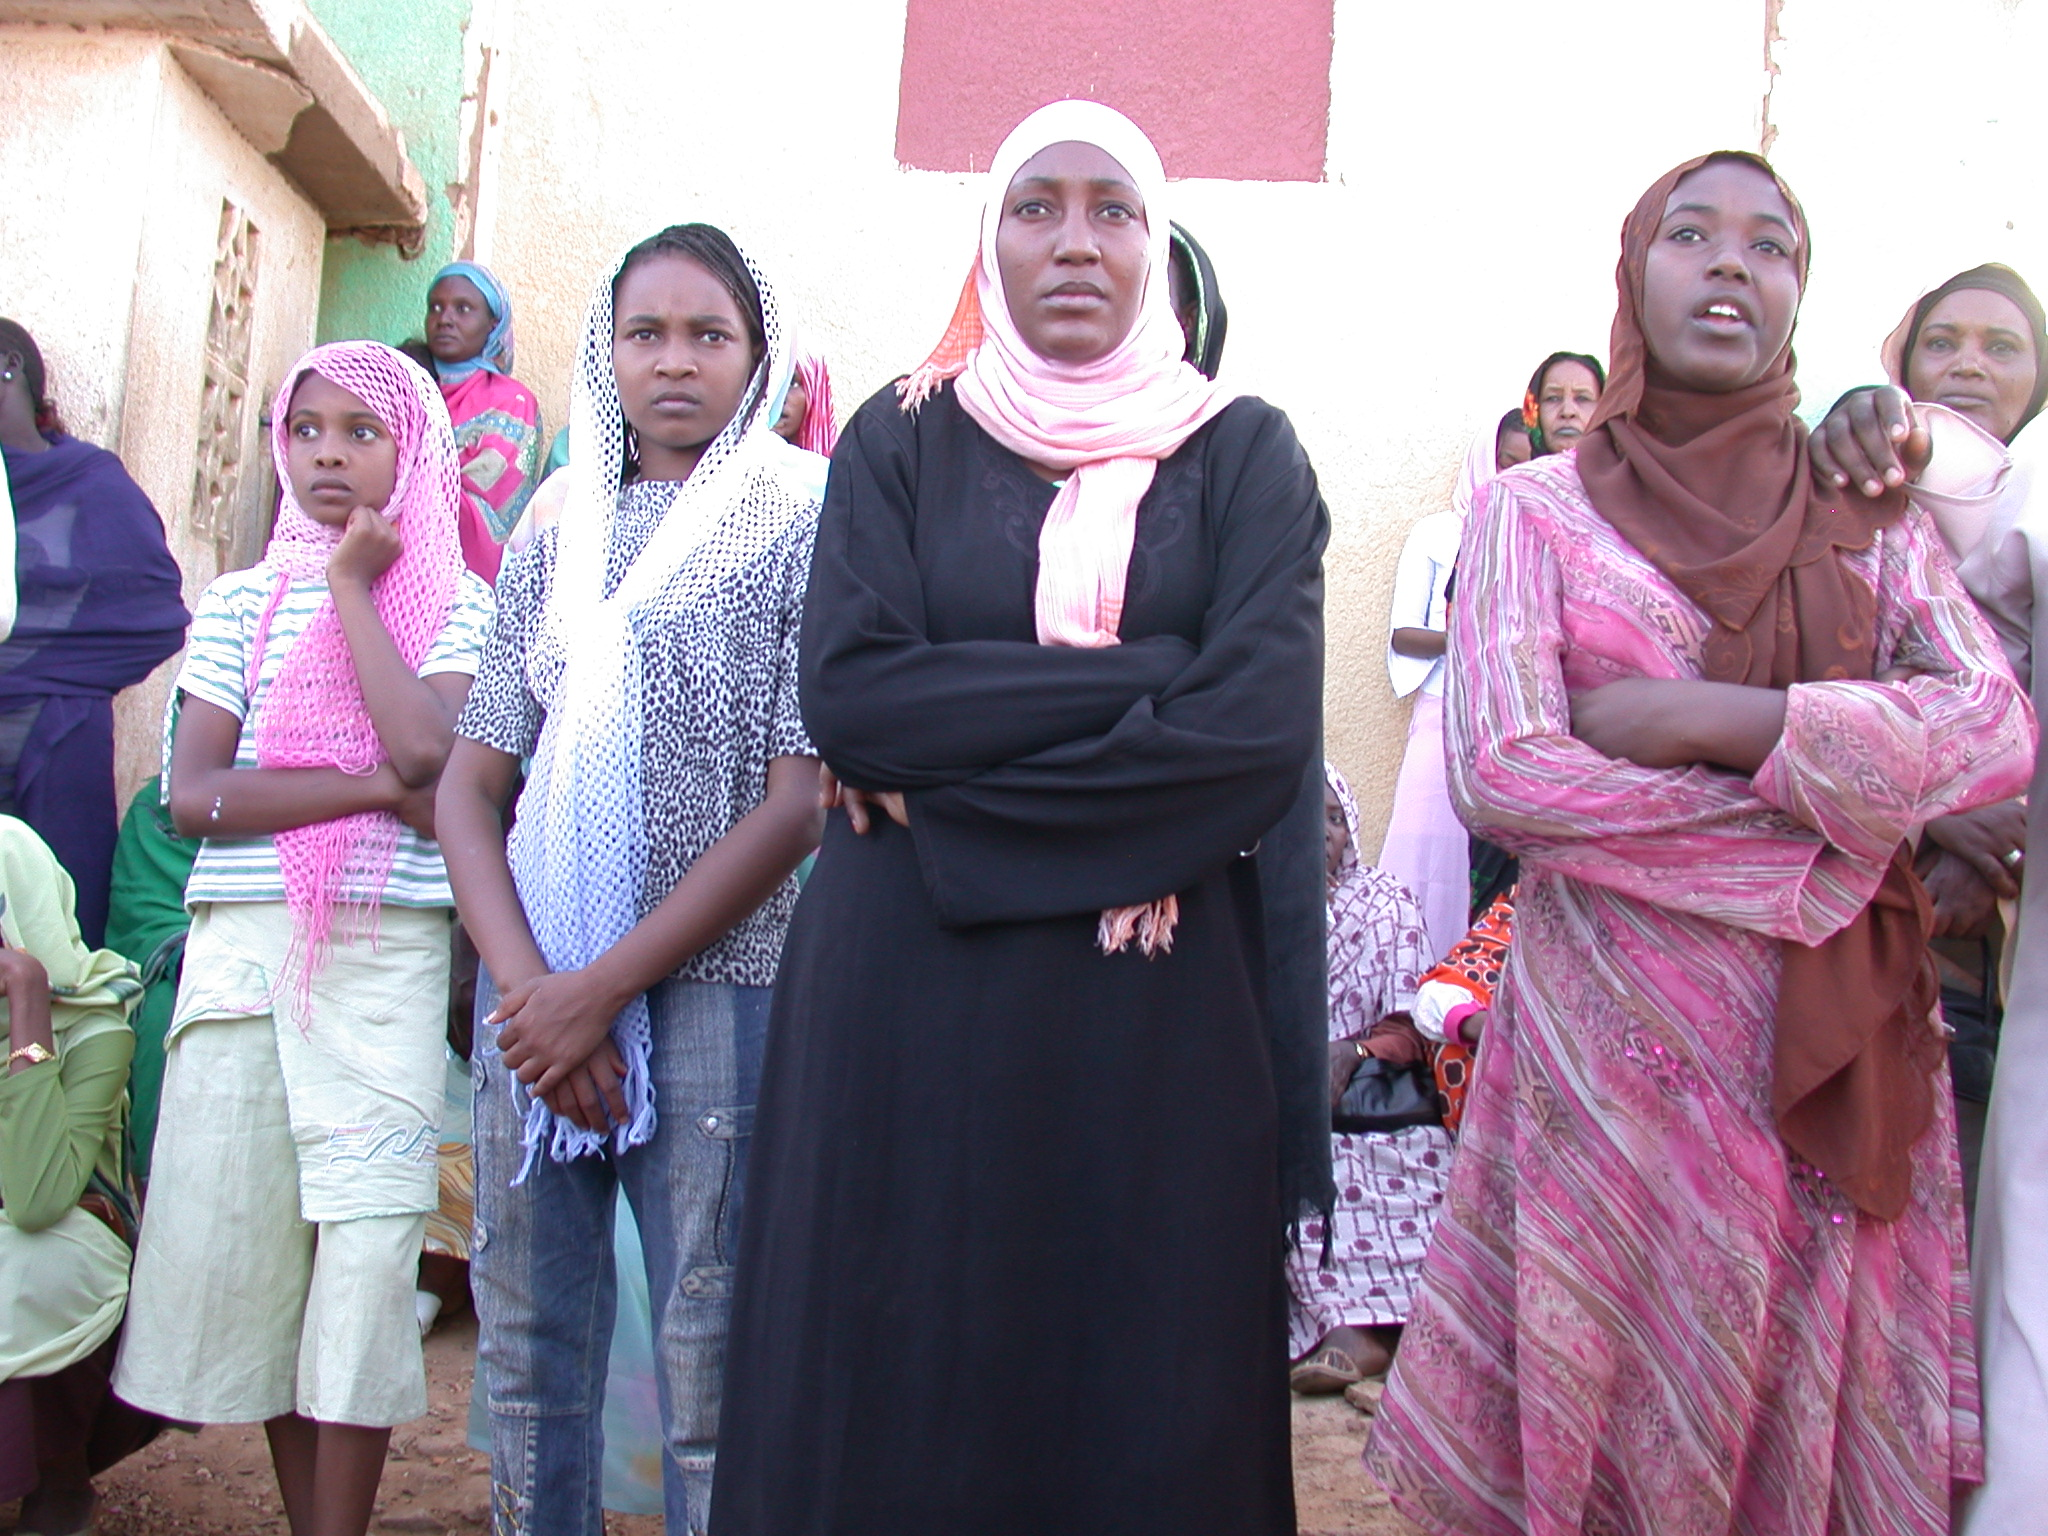 Women at Sufi Dancing Site, Omdurman, Sudan